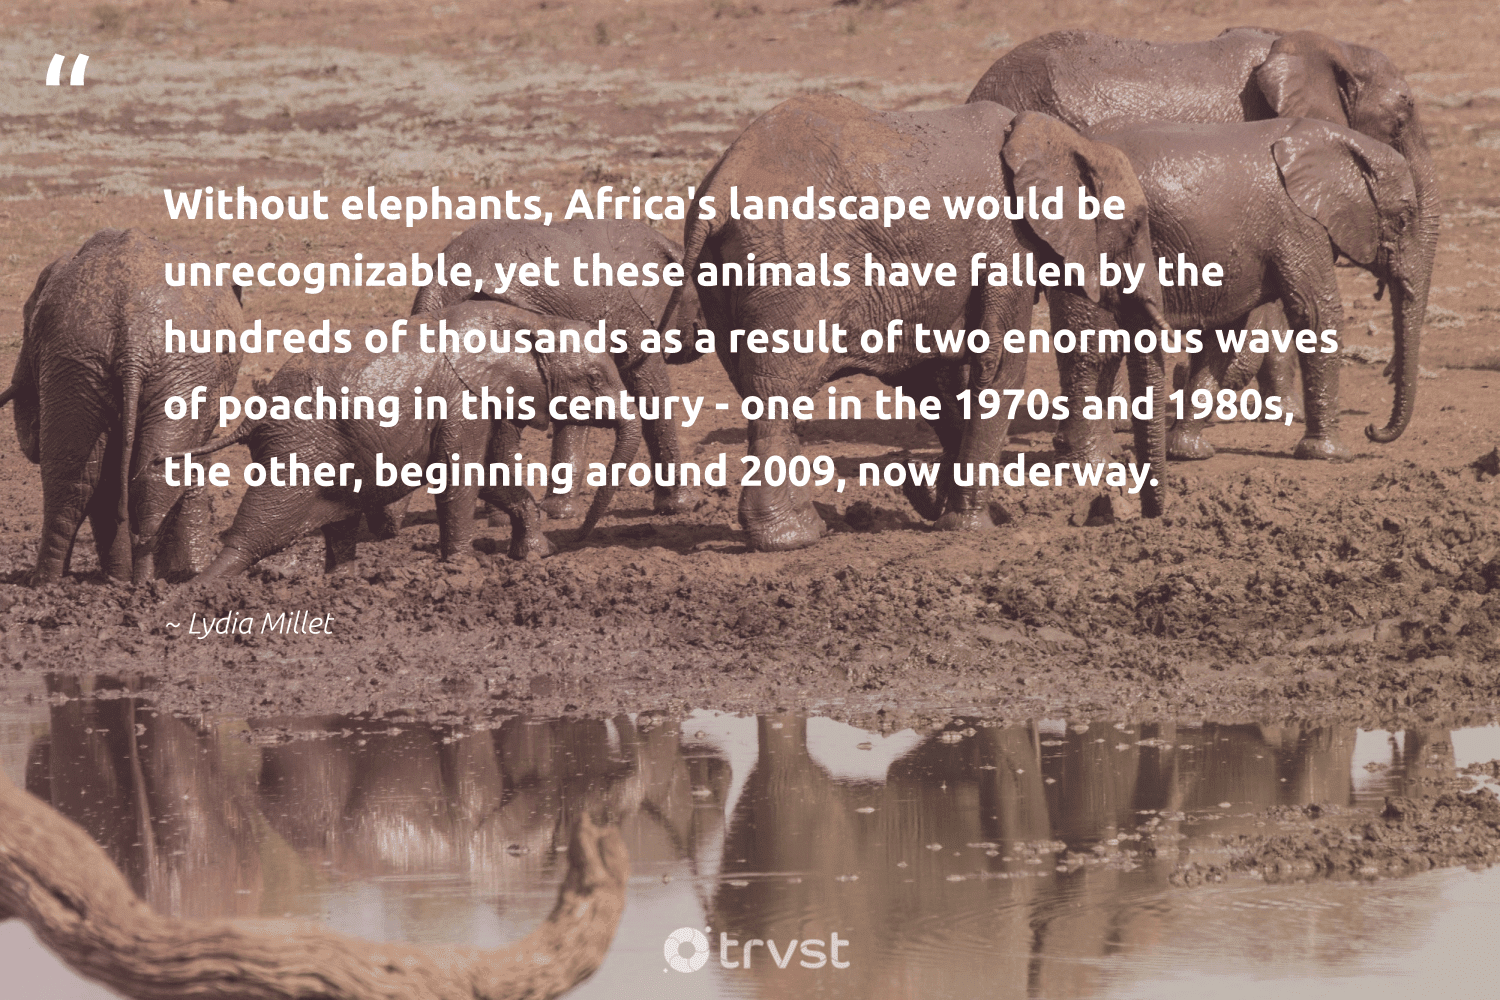 """""""Without elephants, Africa's landscape would be unrecognizable, yet these animals have fallen by the hundreds of thousands as a result of two enormous waves of poaching in this century - one in the 1970s and 1980s, the other, beginning around 2009, now underway.""""  - Lydia Millet #trvst #quotes #waves #animals #elephants #wildlife #elephantlove #nature #planetearthfirst #animallovers #endangered #geology"""